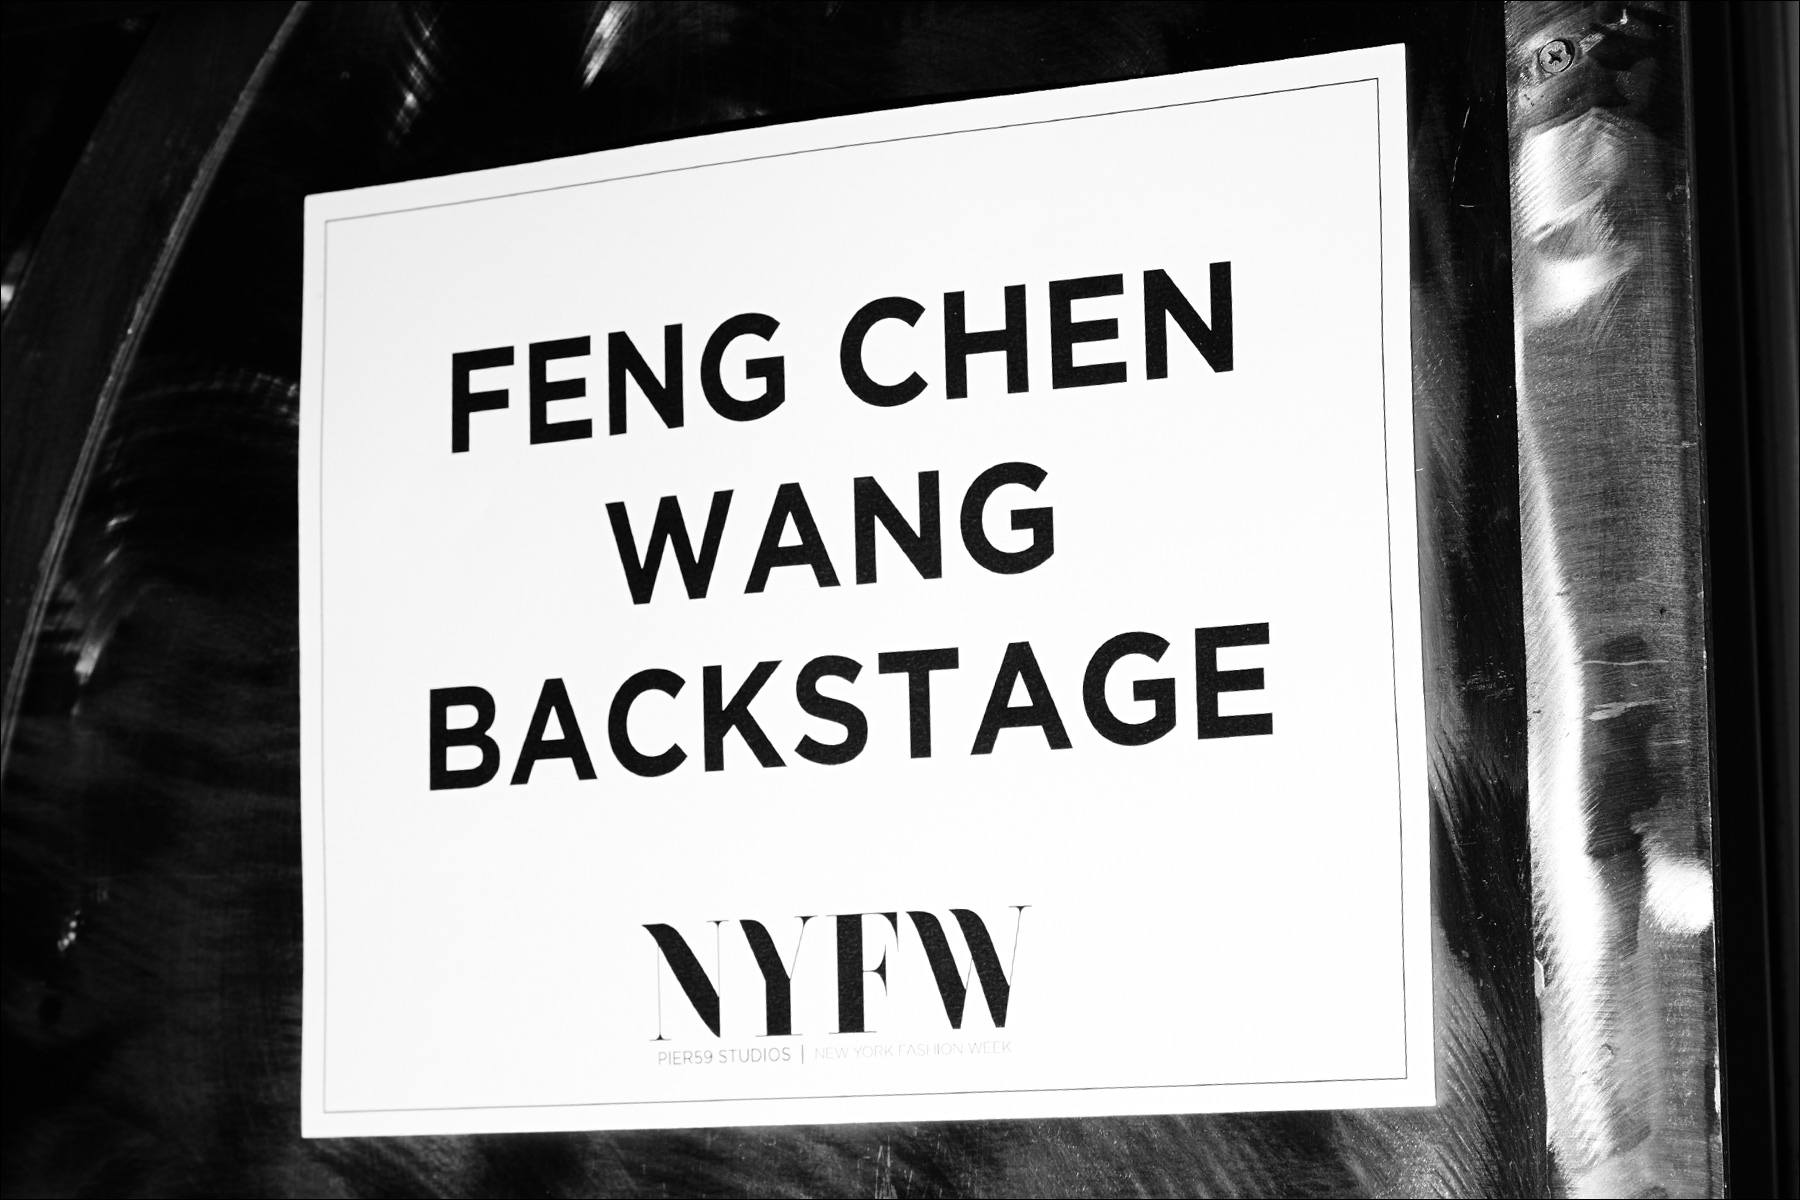 Backstage sign for designer Feng Chen Wang. Photography by Alexander Thompson for Ponyboy magazine.